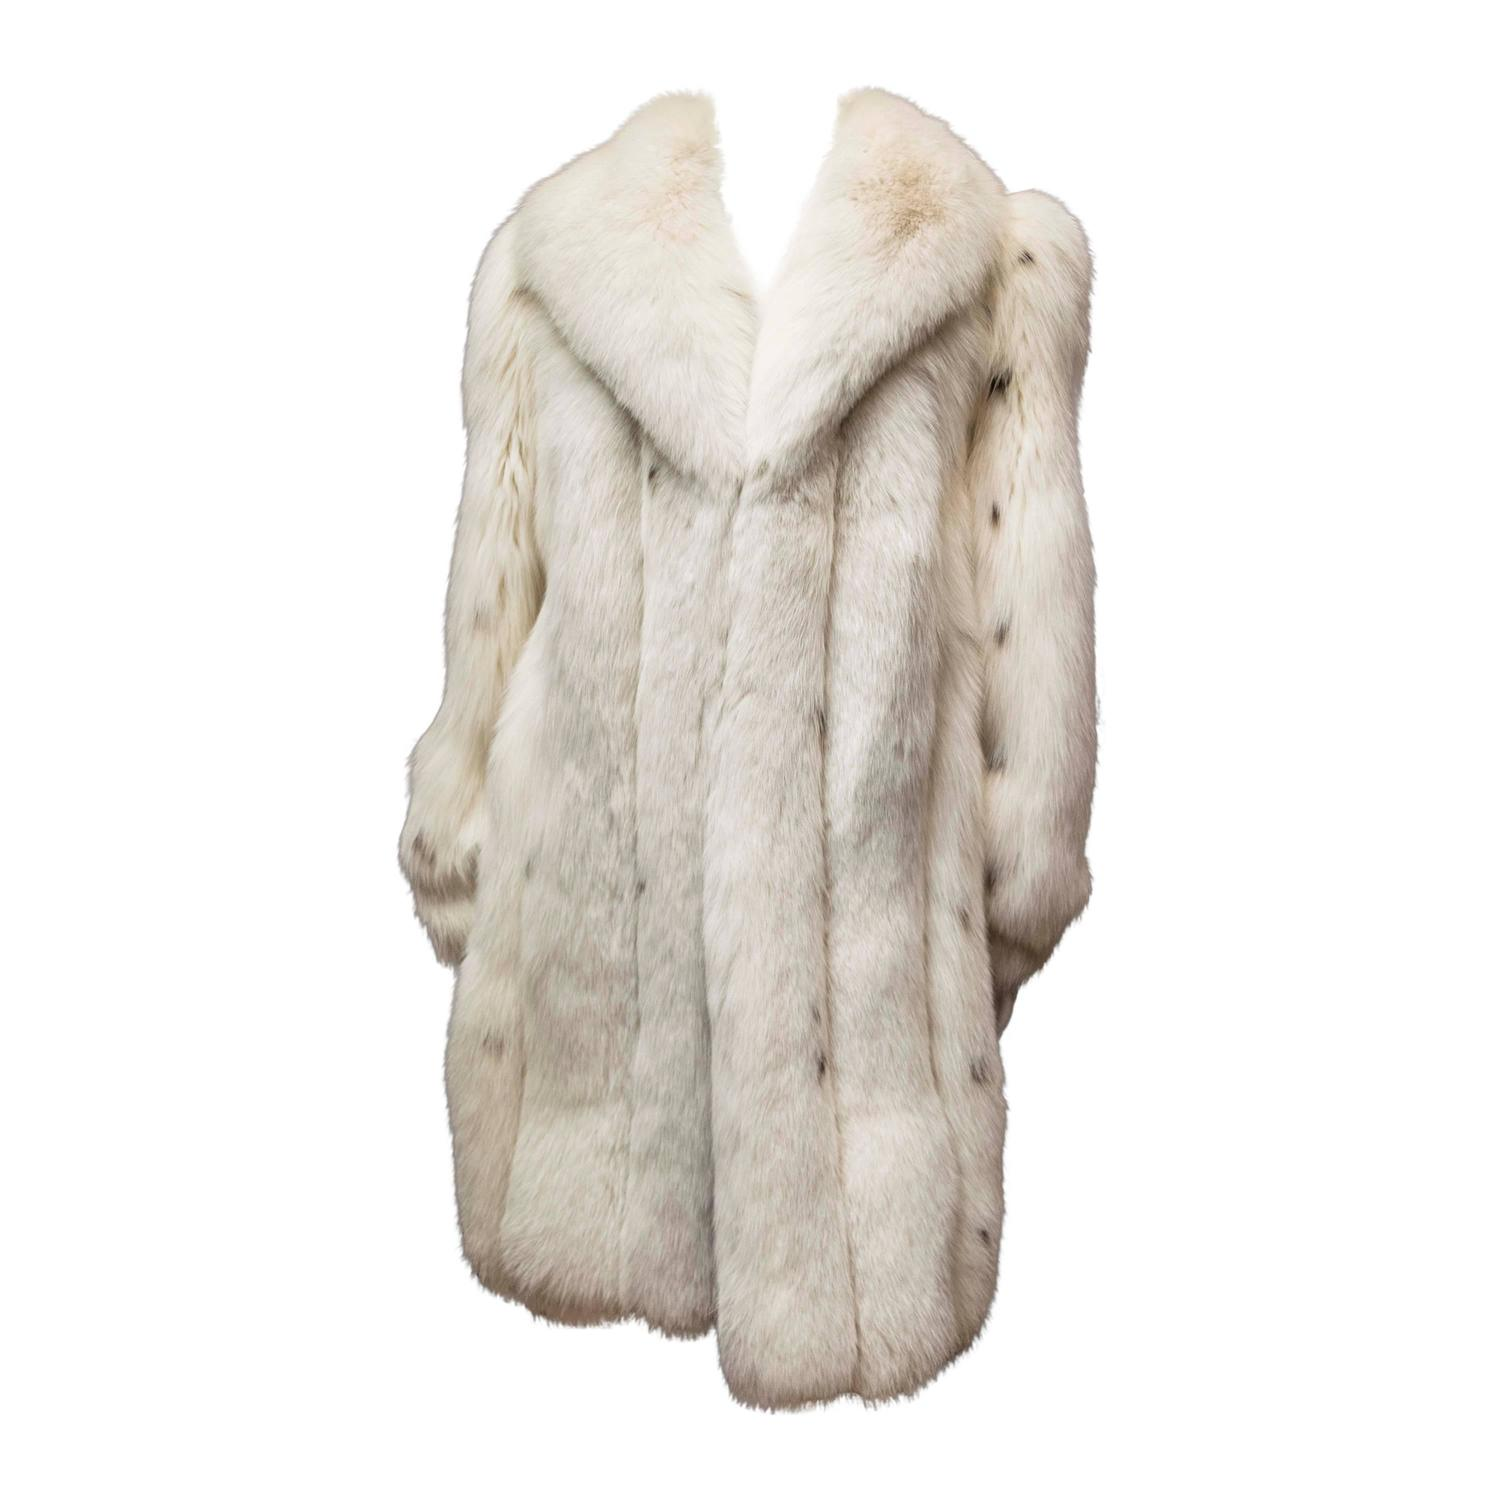 Ivory Spotted Fox Fur Coat 1